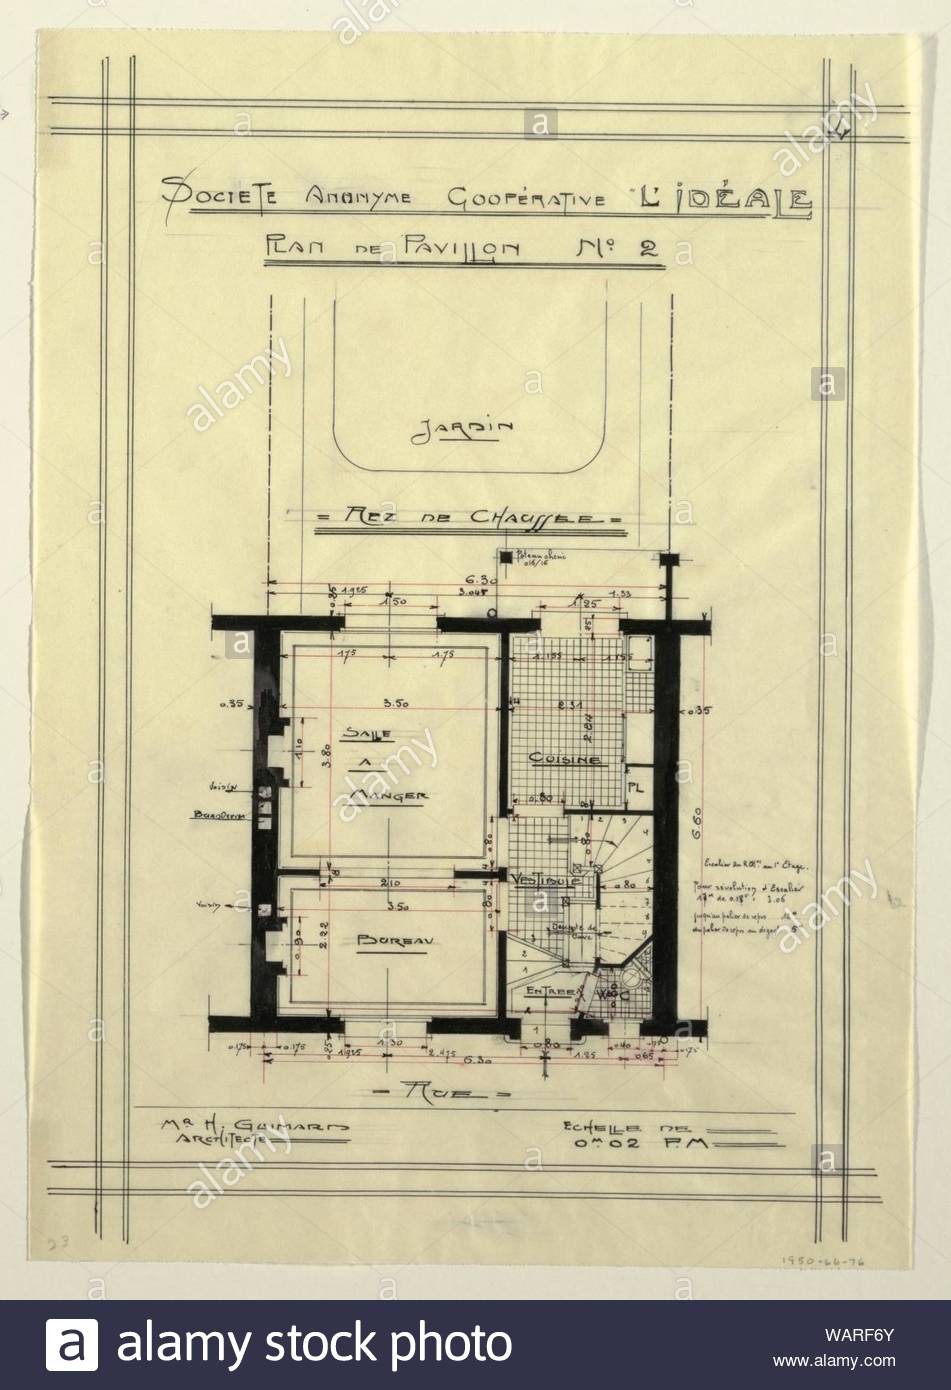 Drawing House Floor Plans Best Of Drawing Floor Plan for the Ground Floor Of A House for the